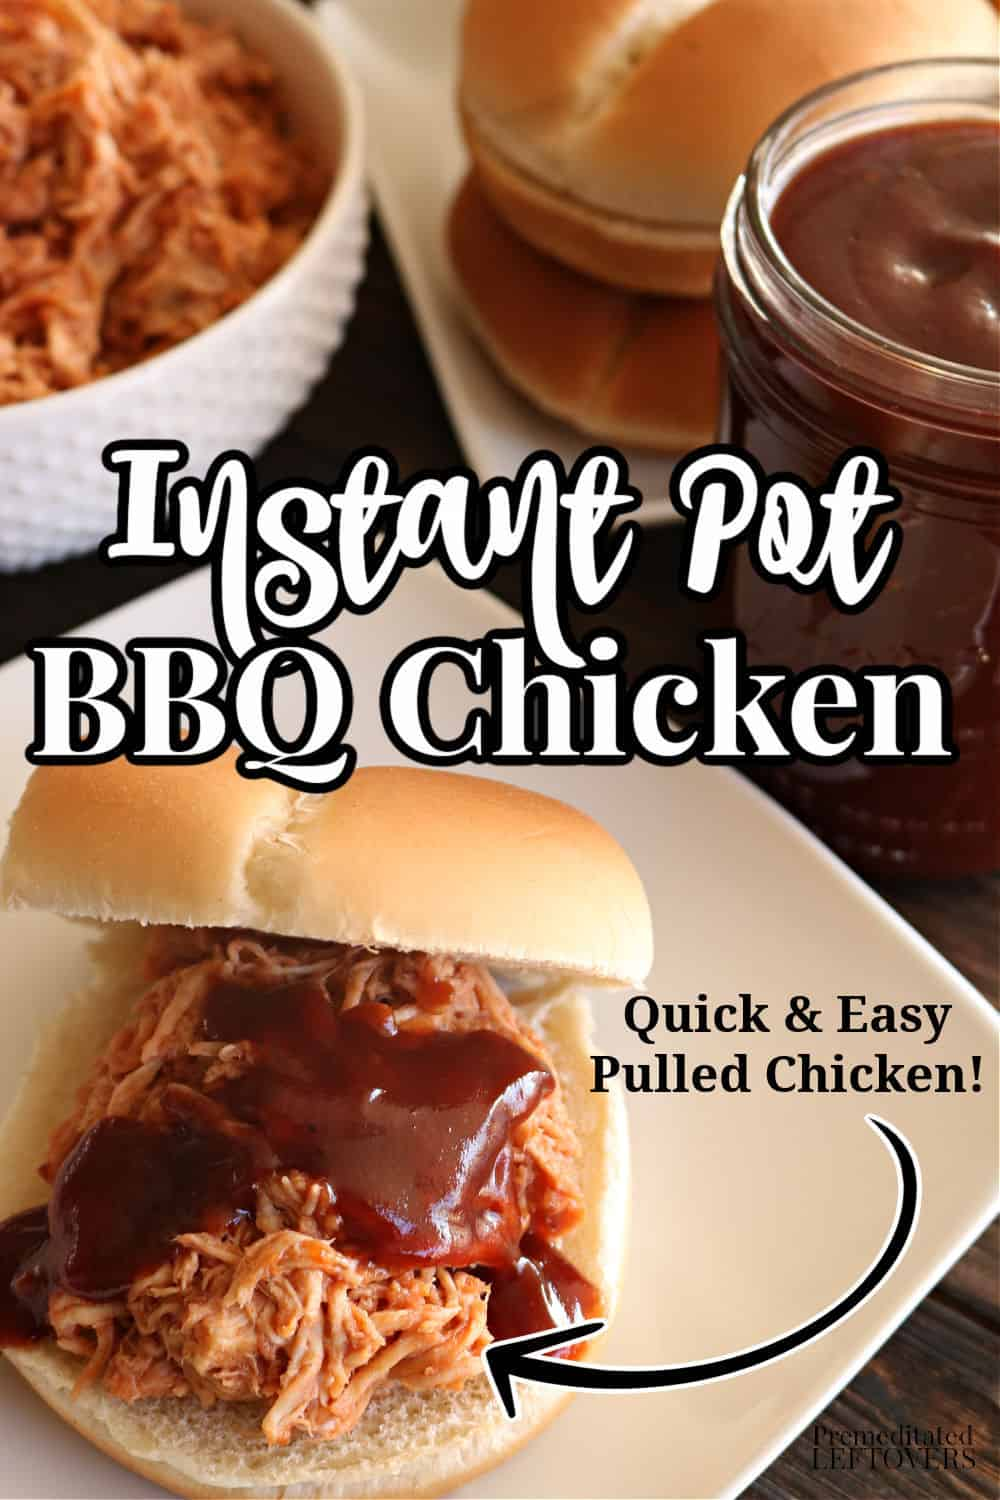 This Instant Pot BBQ Chicken recipe is a quick and easy way to make Pulled BBQ Chicken! Instant Pot Barbecue Chicken can be shredded or served as whole pieces. Use chicken breasts or boneless thighs to make this simple recipe.